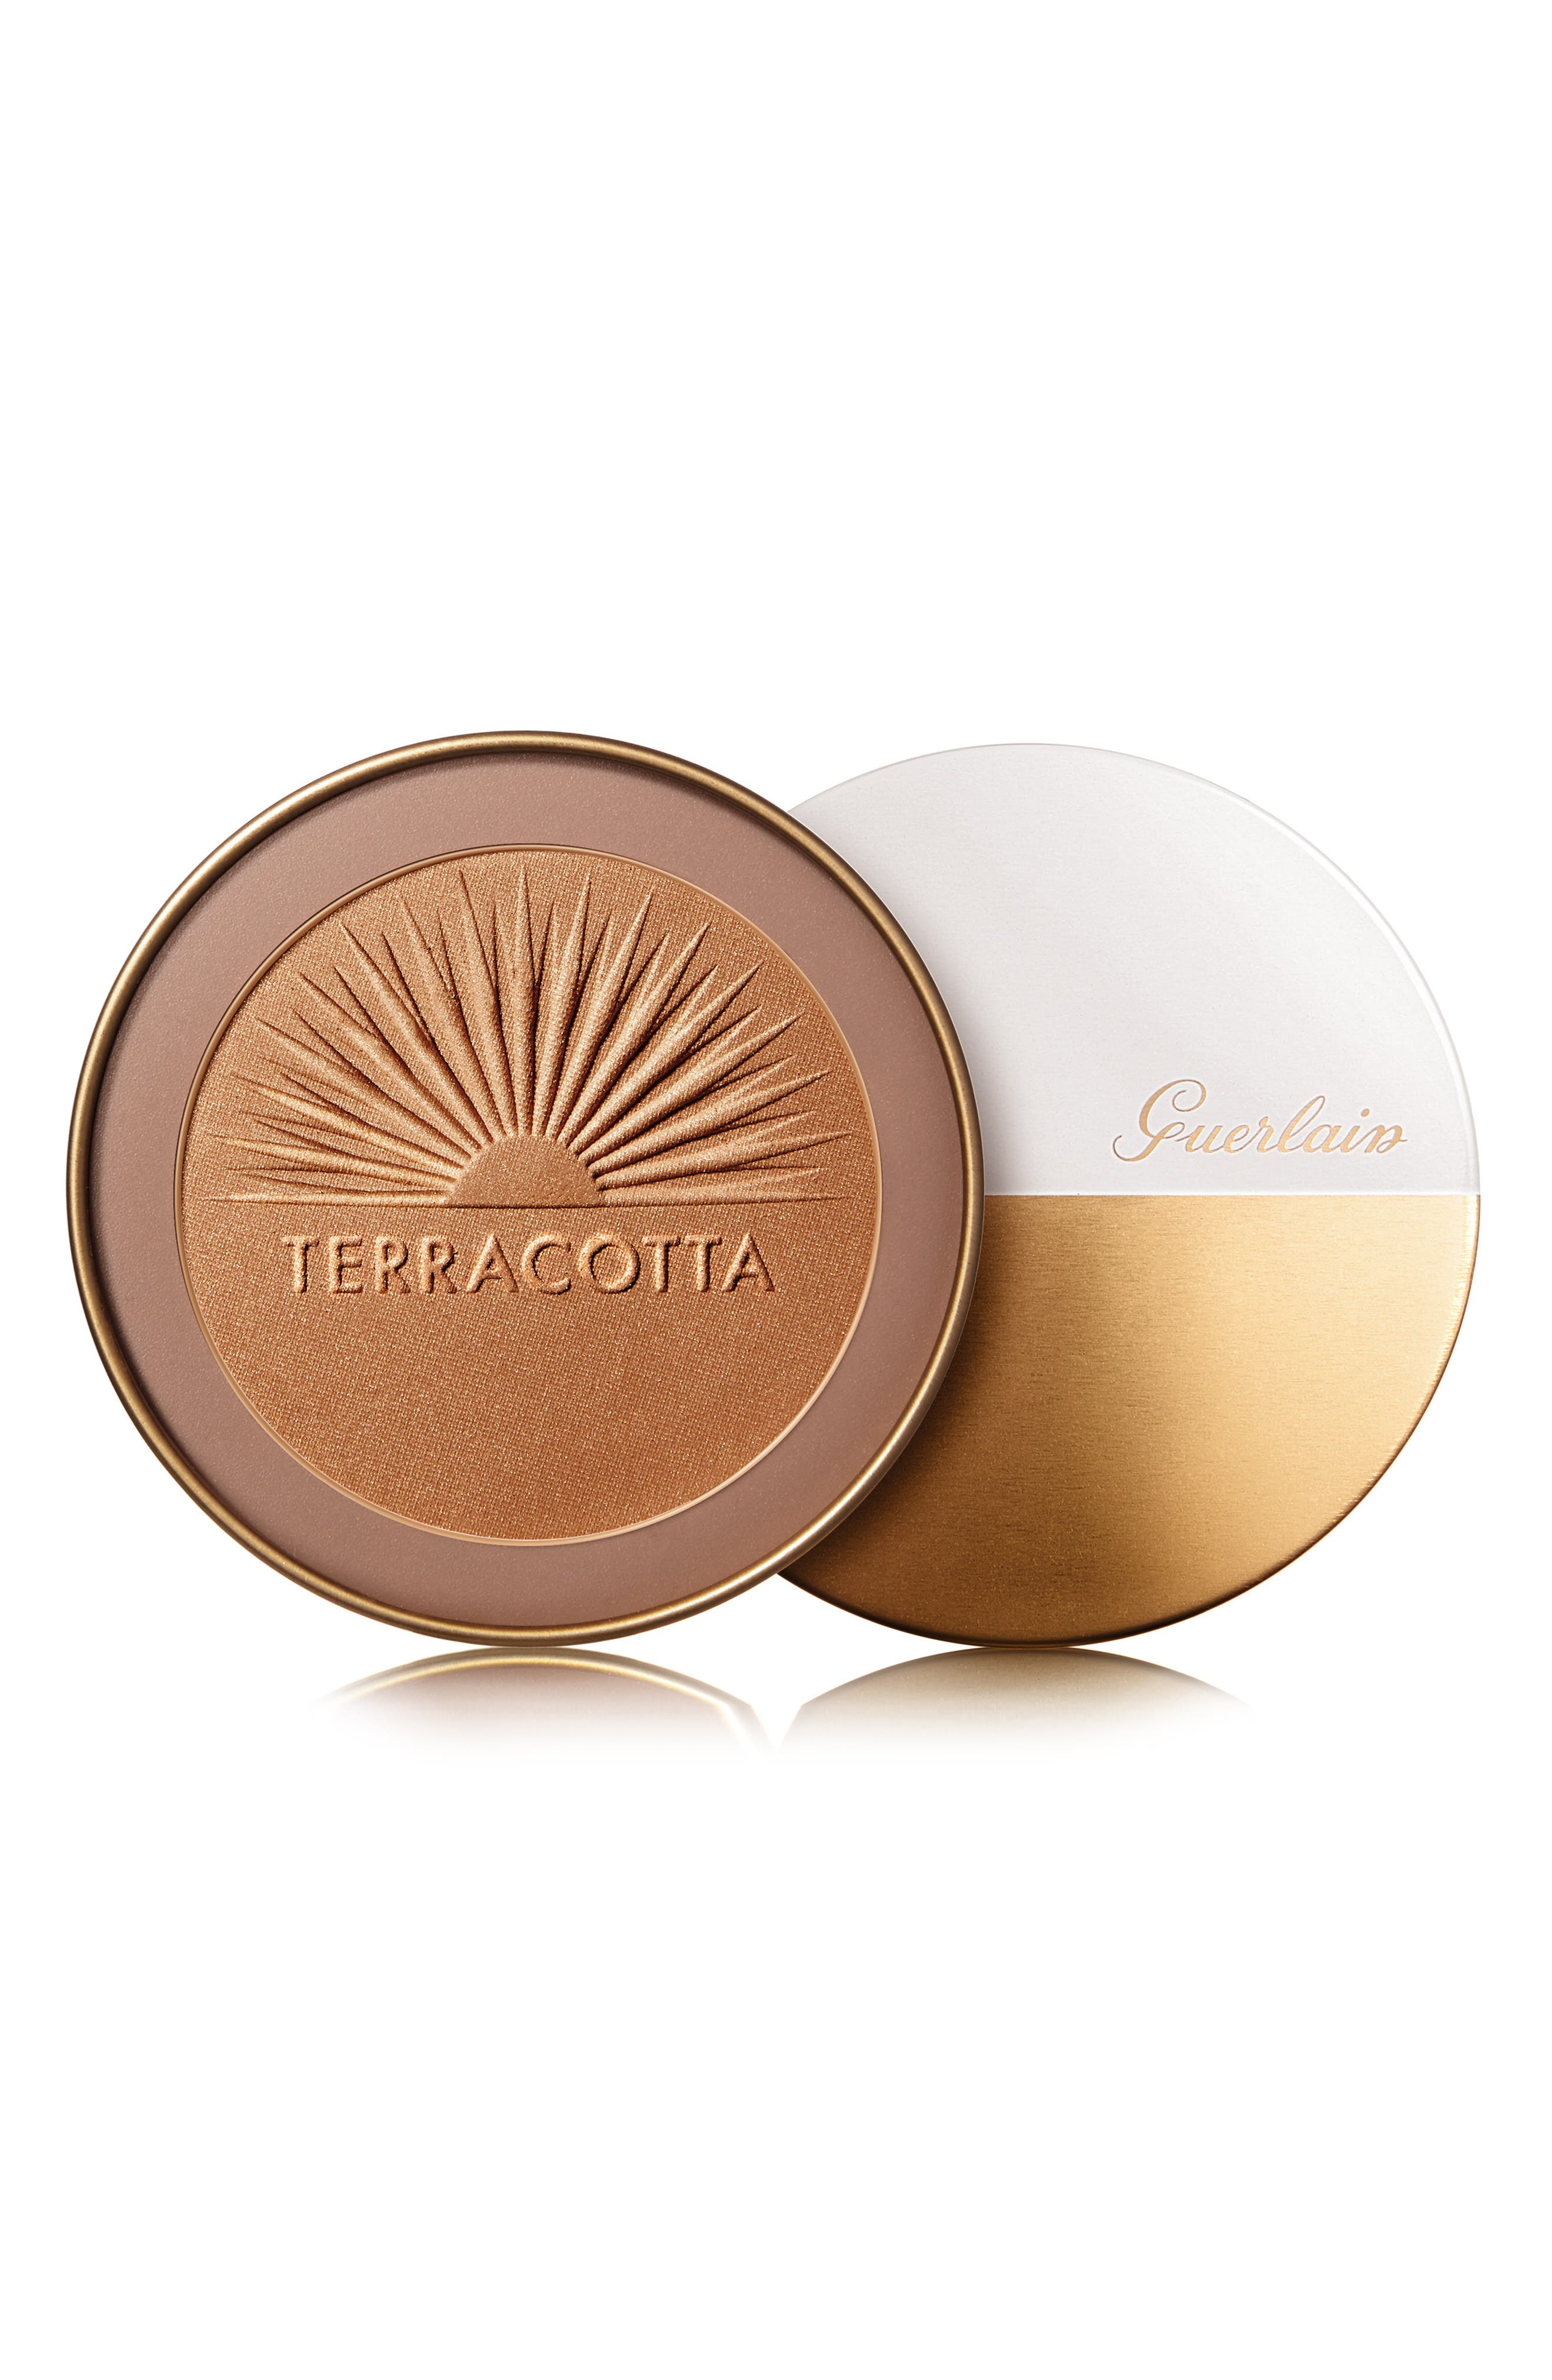 Main Image - Guerlain Terracotta Ultra Shine (Limited Edition)